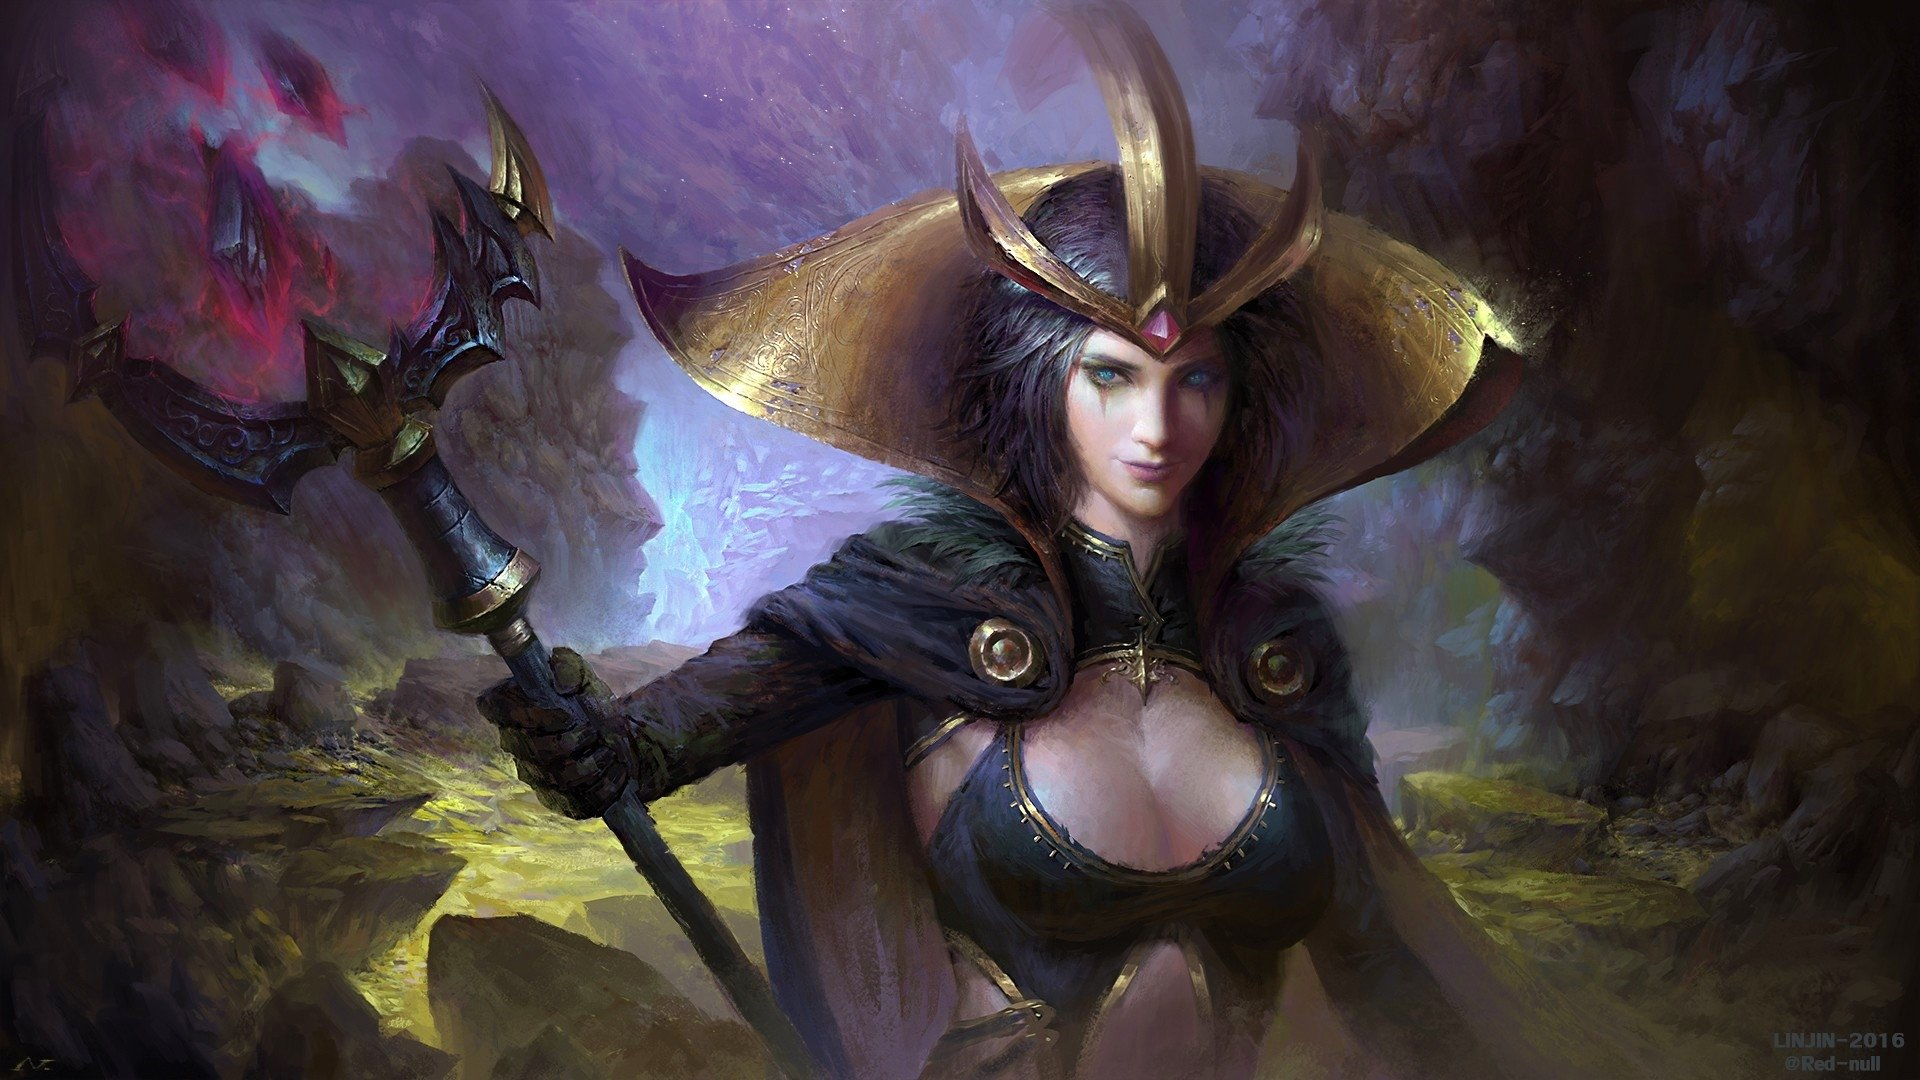 Video Game - League Of Legends  Girl Fantasy Woman Staff Crown Weapon Sorceress Blue Eyes Short Hair LeBlanc (League Of Legends) Wallpaper